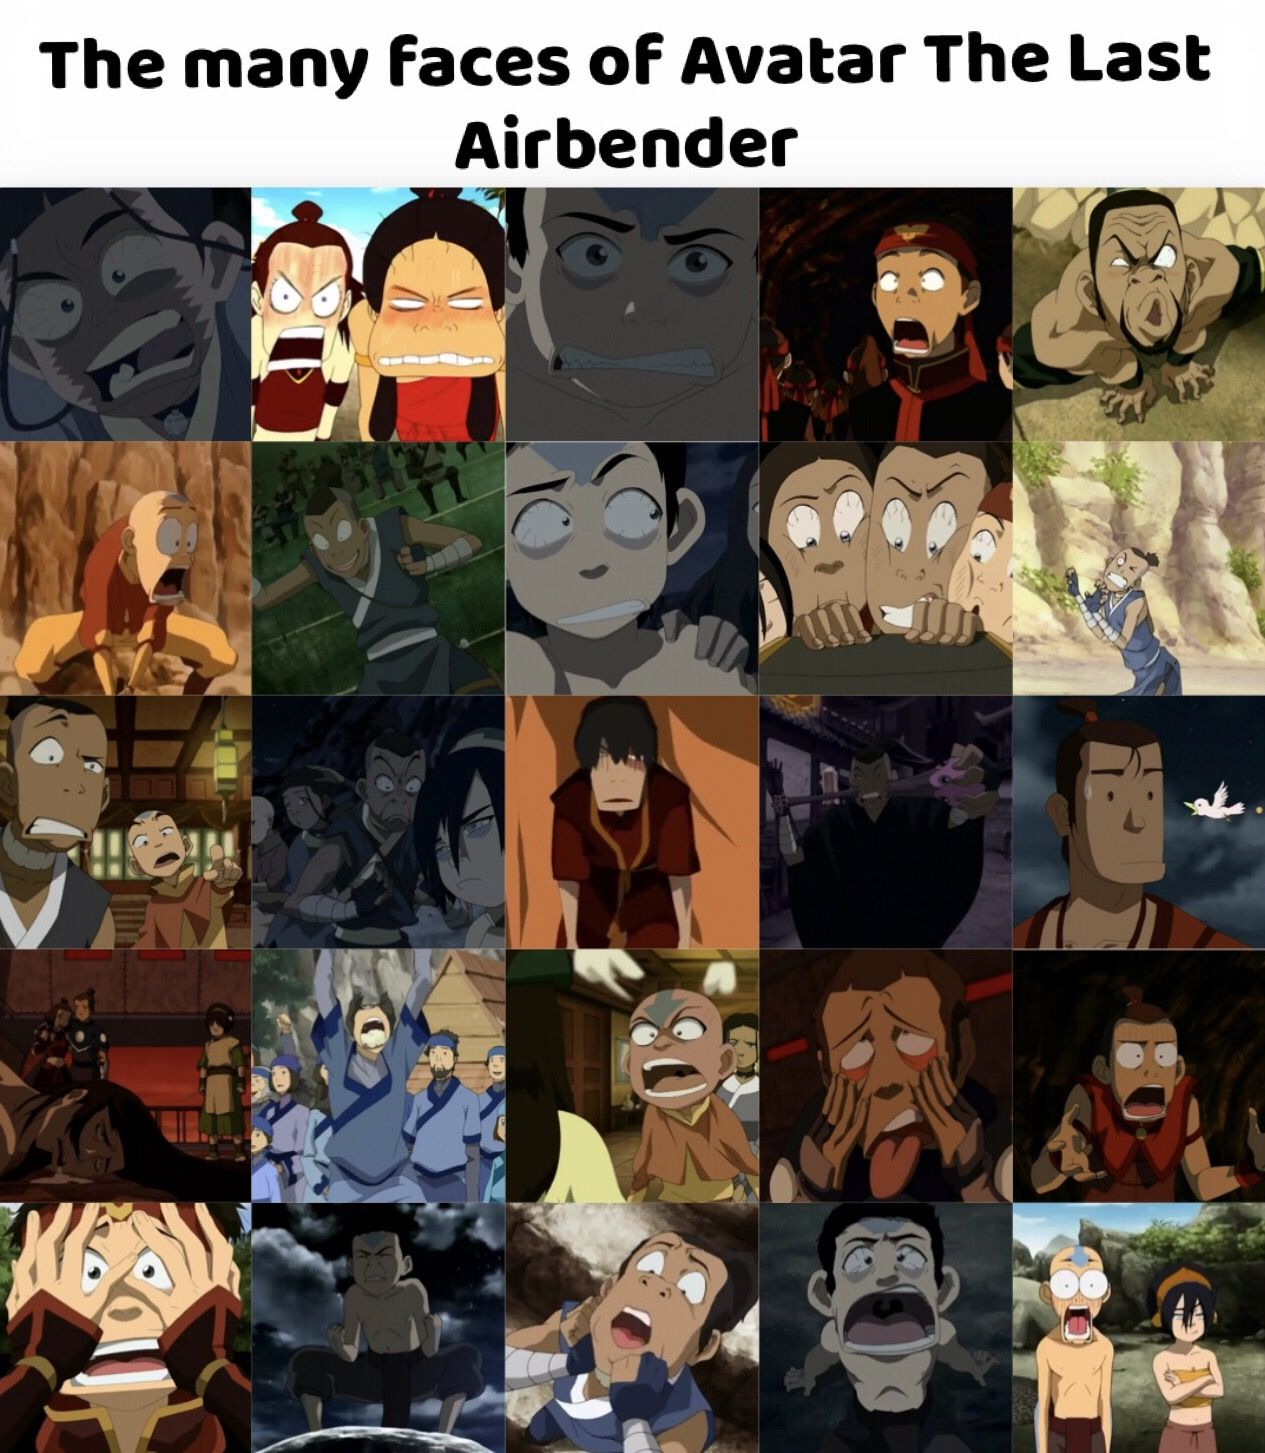 The Last Airbender All Avatars: The Many Faces Of Avatar The Last Airbender :) Rewatched